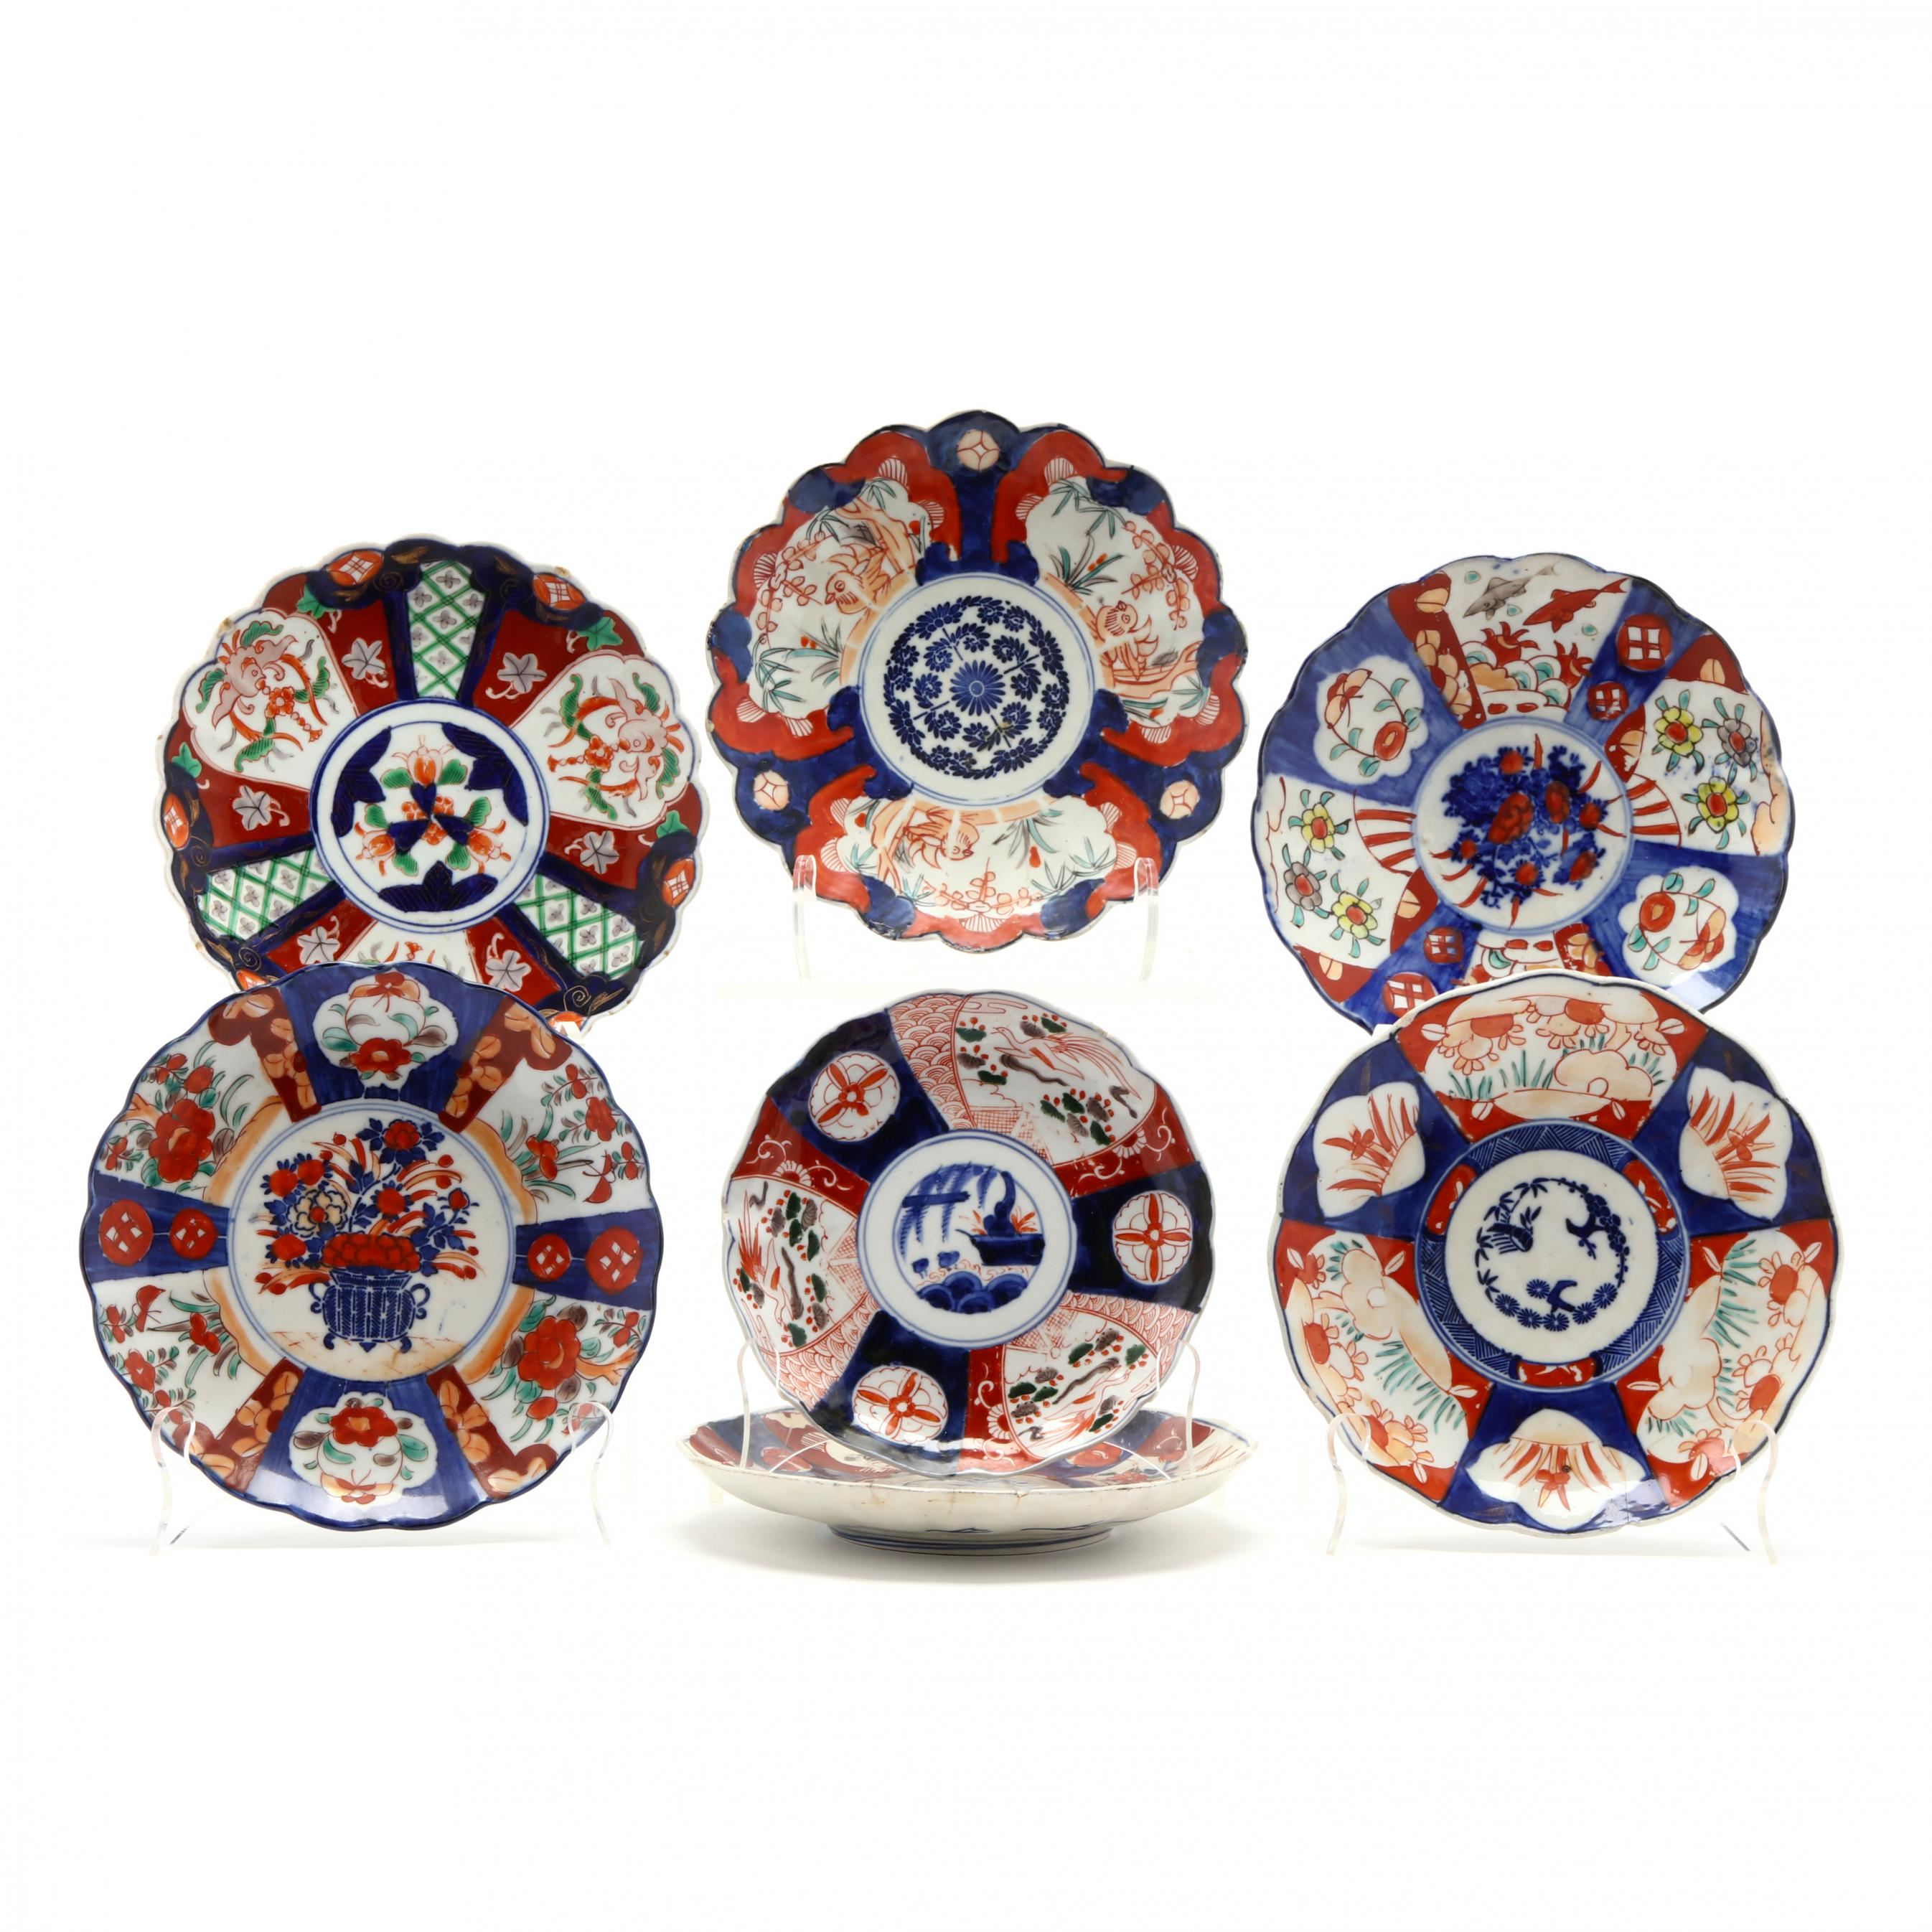 seven-antique-japanese-imari-porcelain-plates